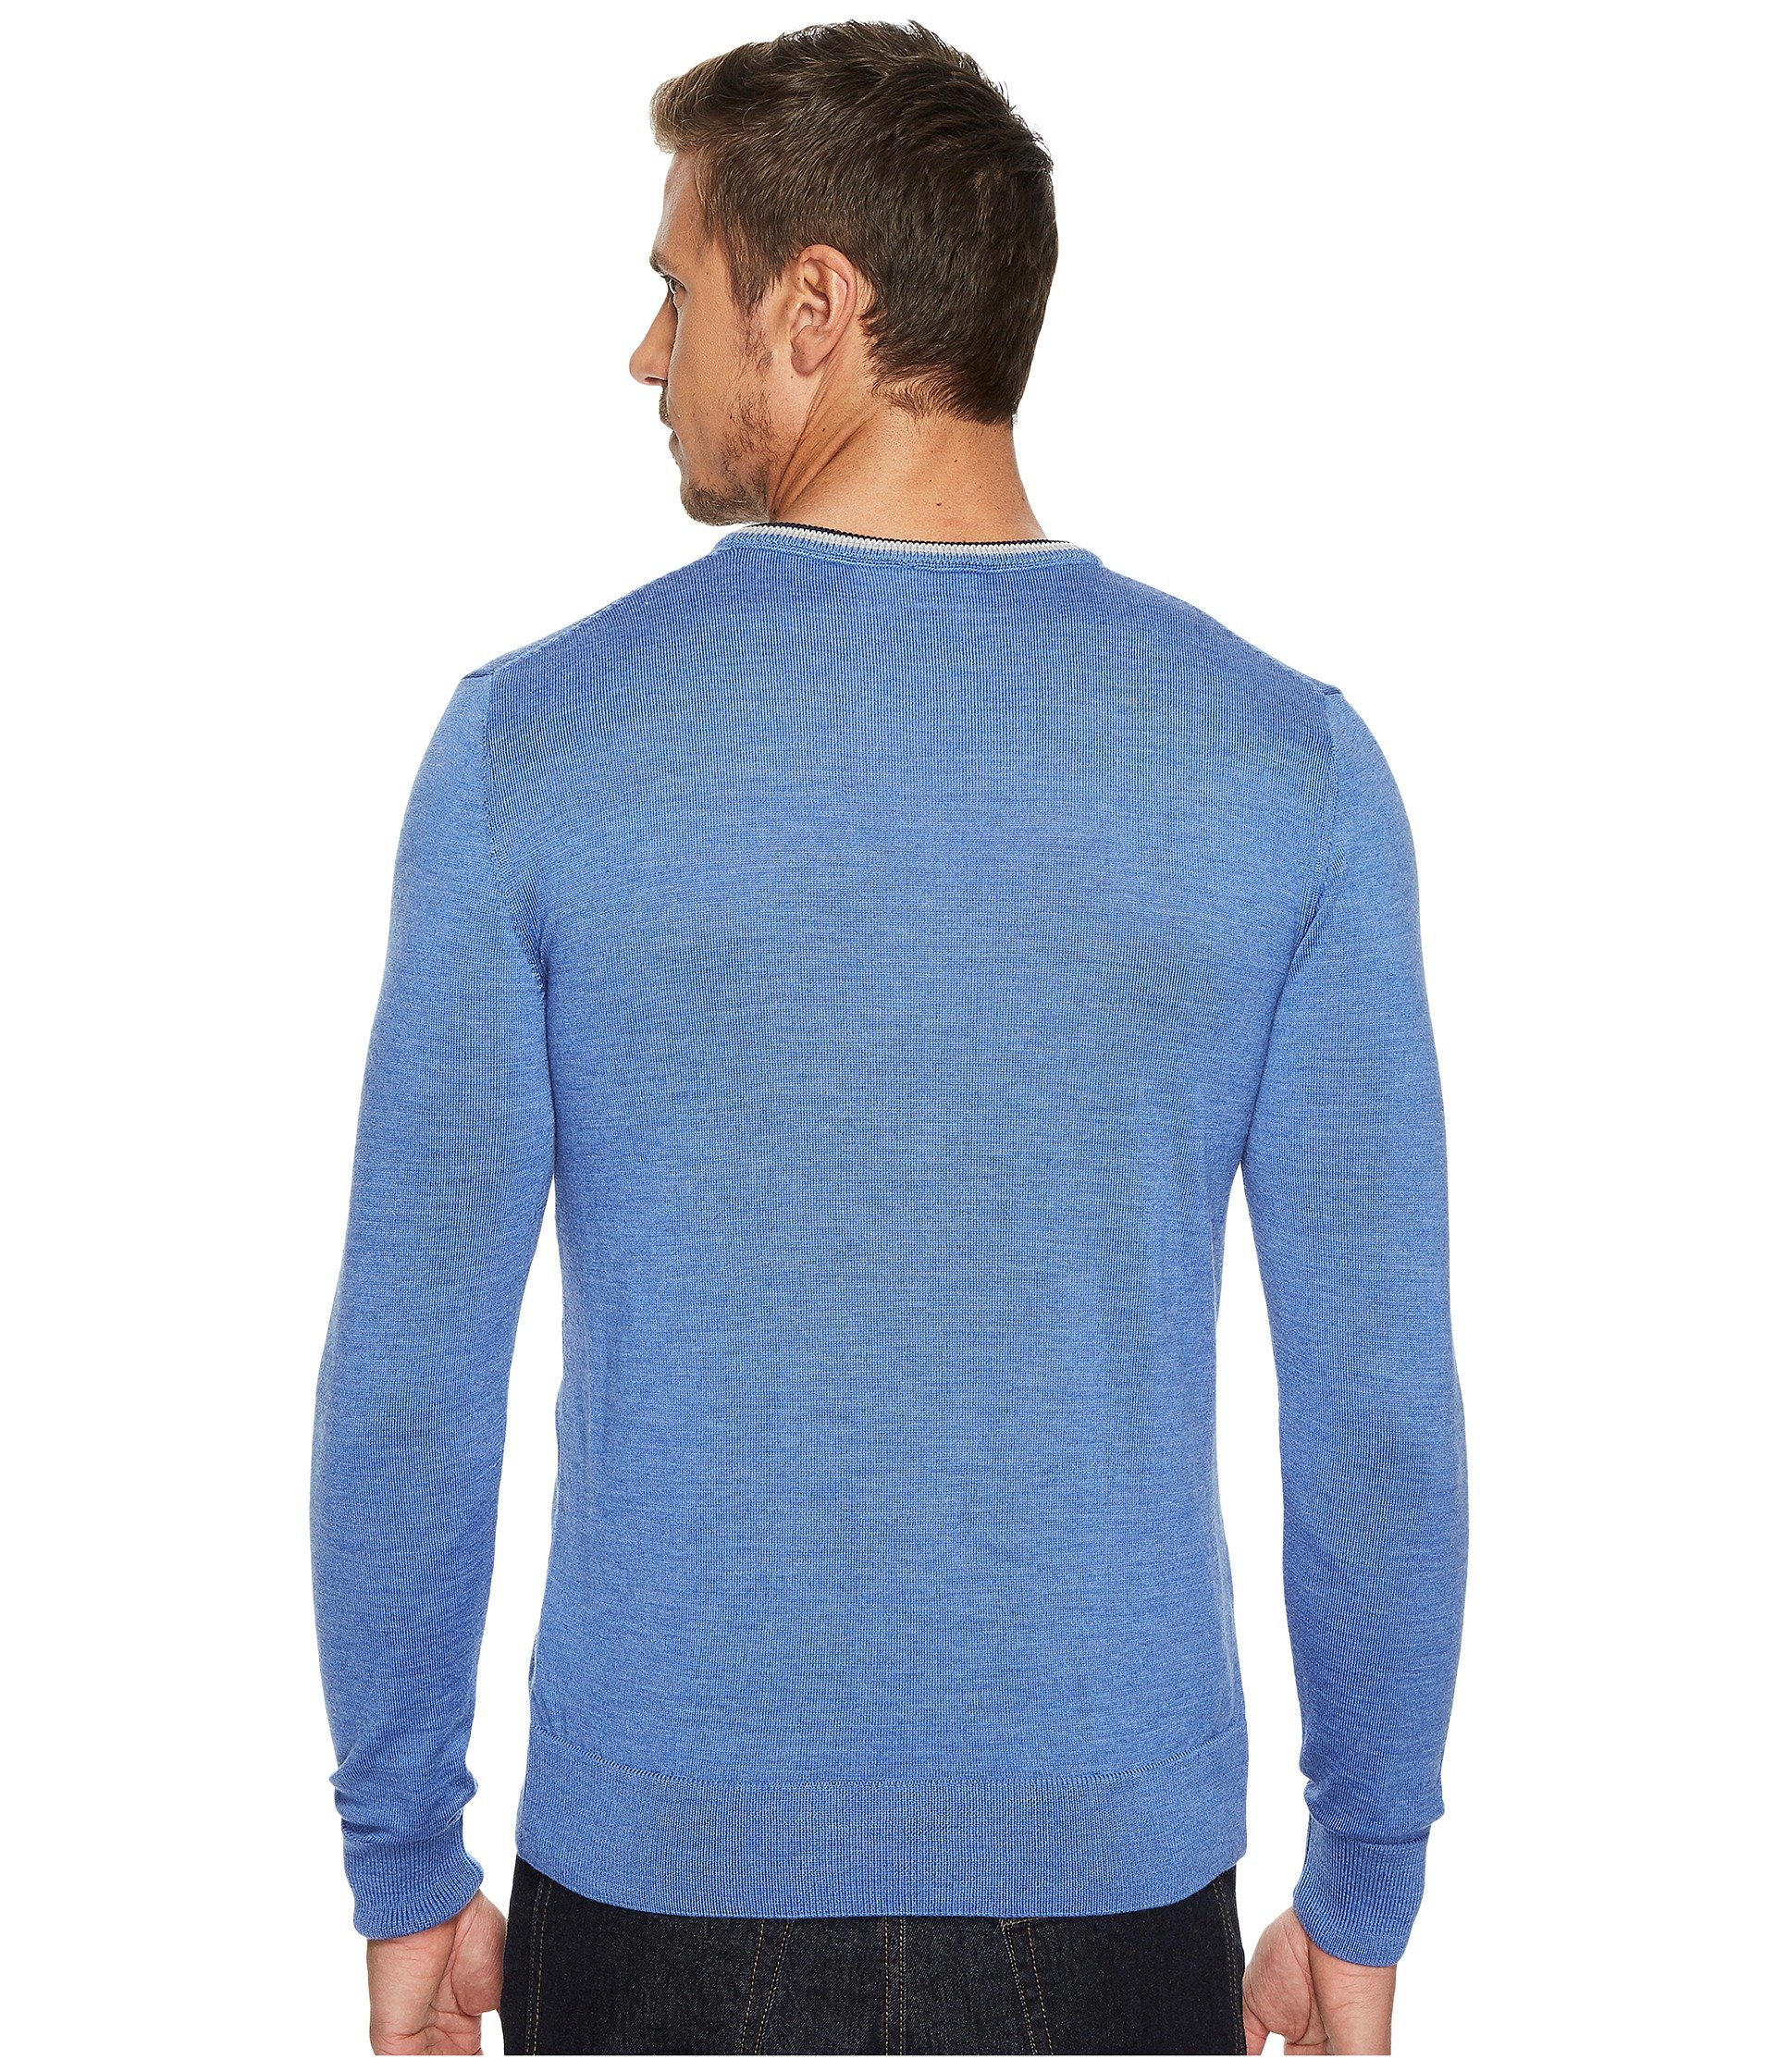 Dale of Norway Kristian masculine sweater, Medium Blue/Off-white/Navy, XX Large by Dale of Norway (Image #4)